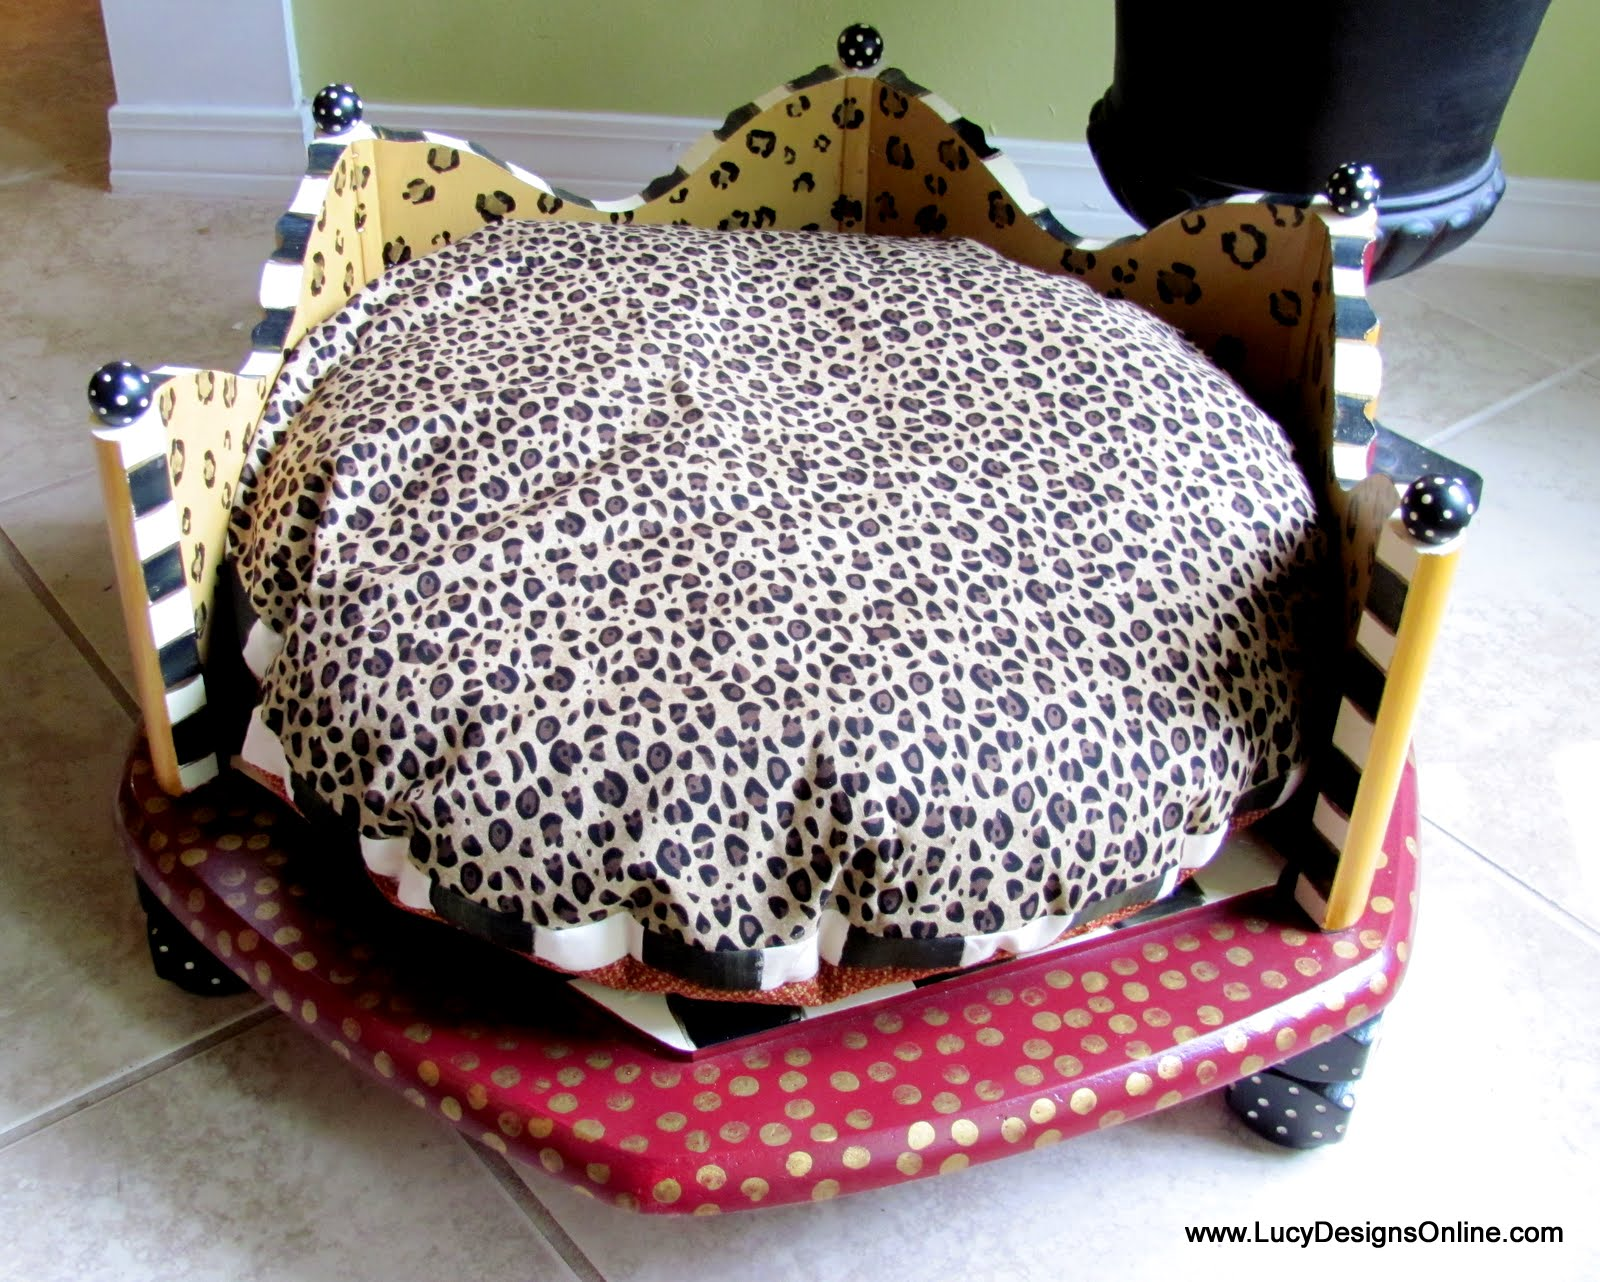 Hand Painted Round Dog Beds Made From An End Table In